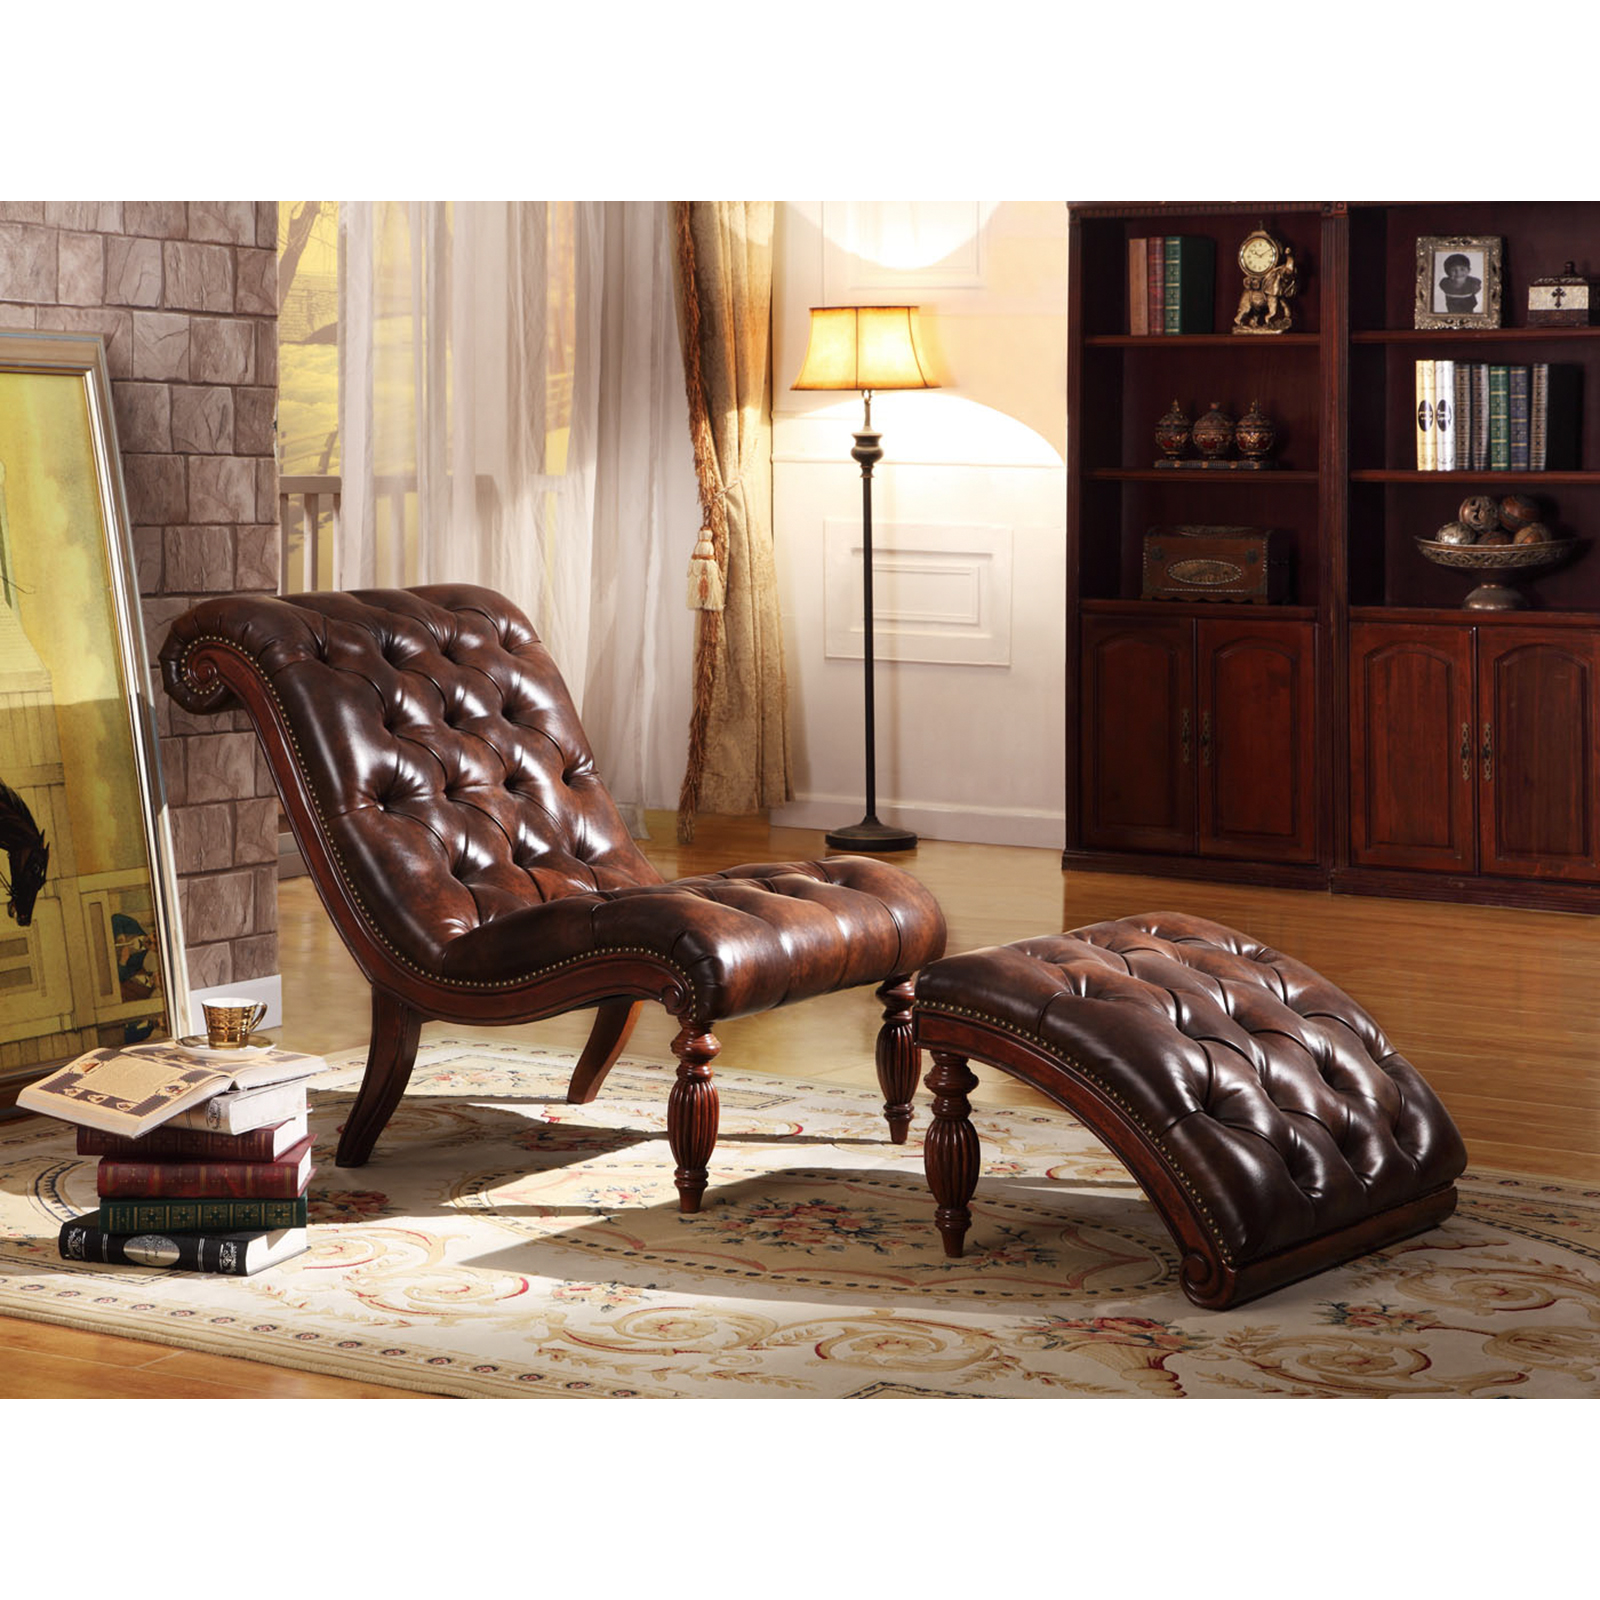 Weston Home Bonded Leather Button Tufted Chaise and Ottoman Warm